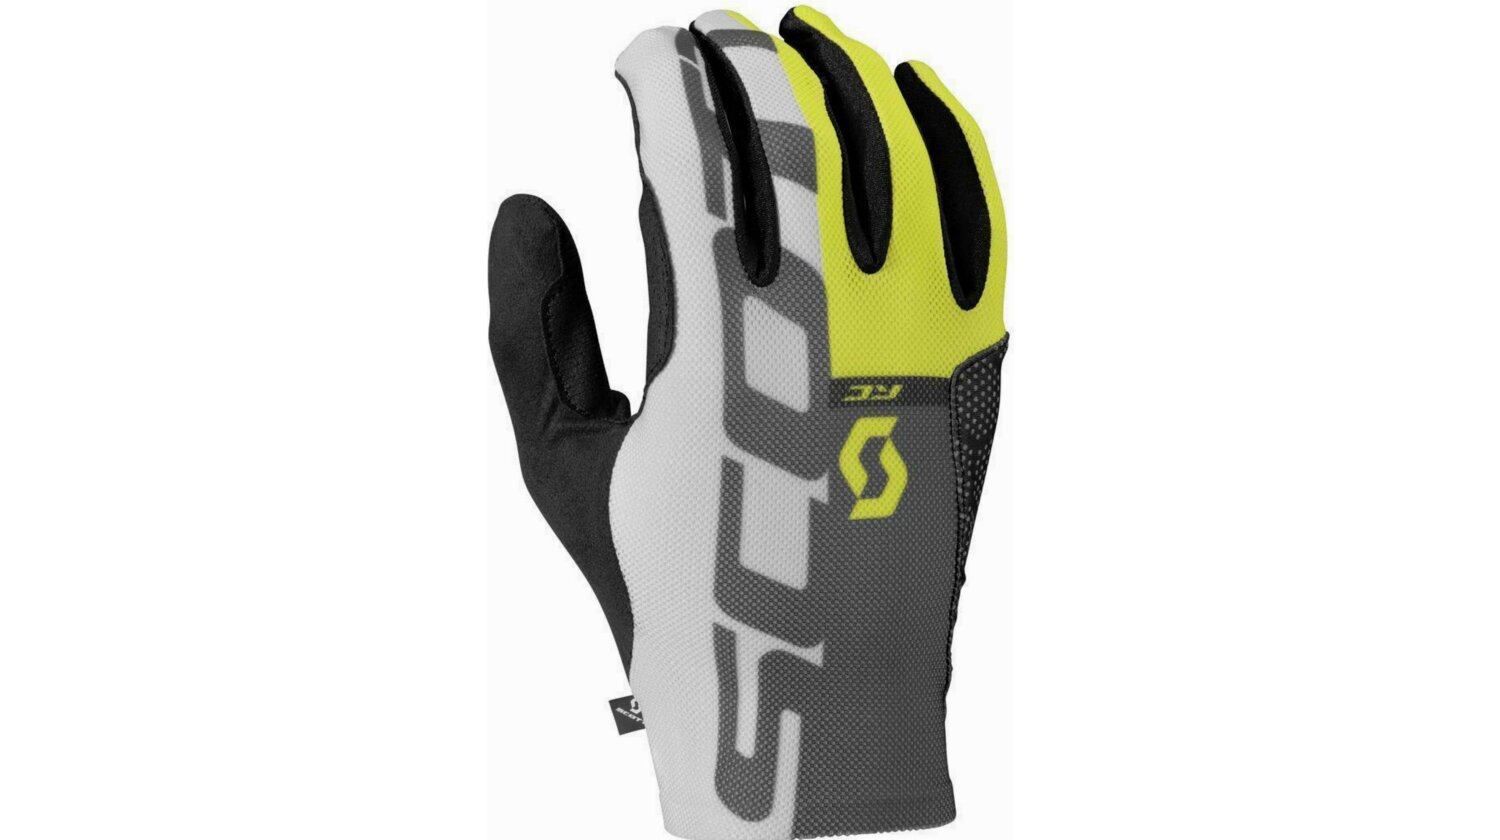 Scott Glove RC Pro Tec LF Langfingerhandschuh black/sulphur yellow XL